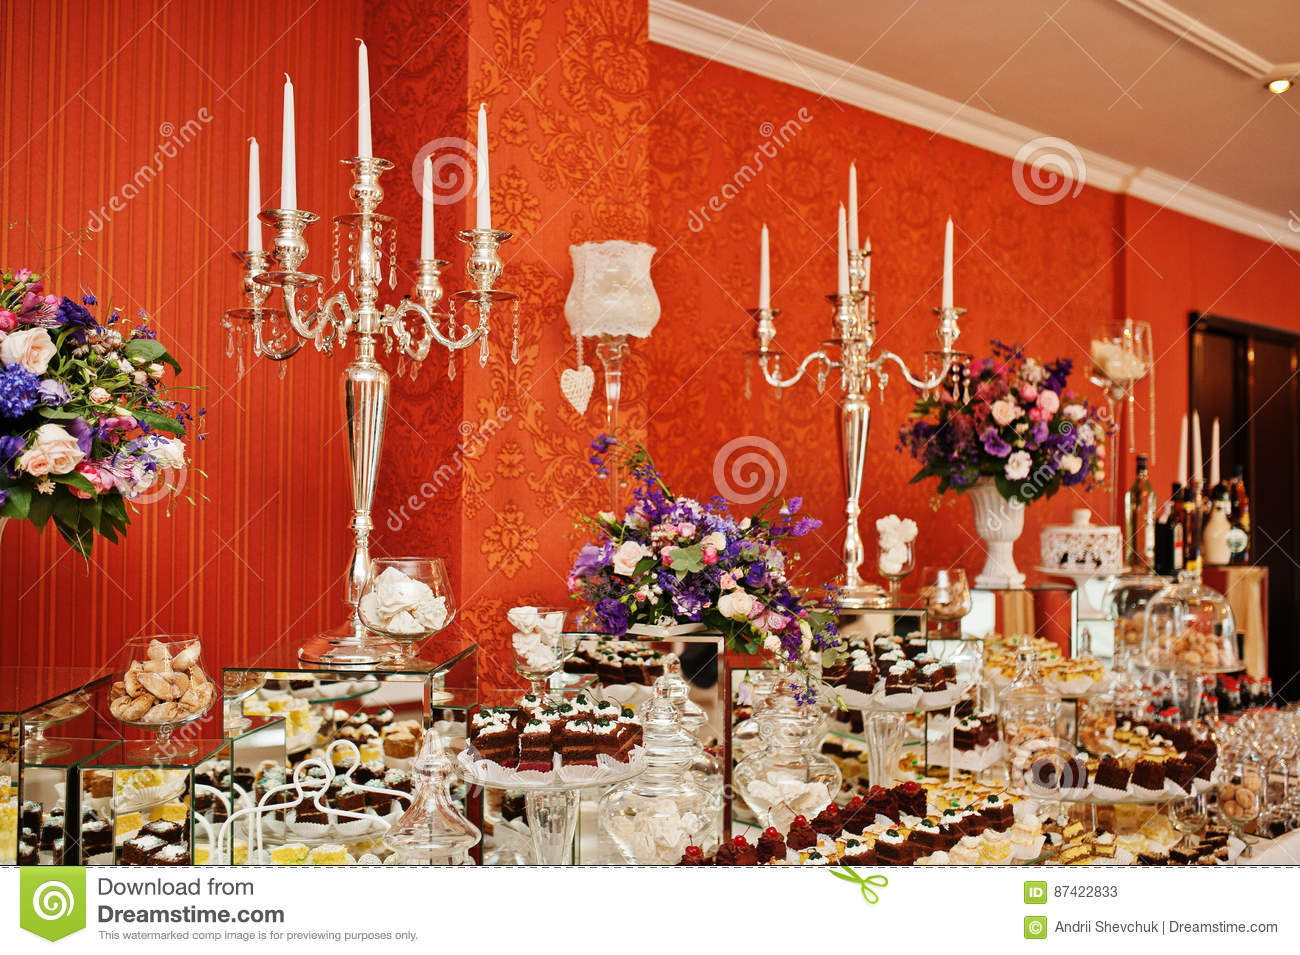 Different Types Of Cakes And Baking At Wedding Reception Table ...